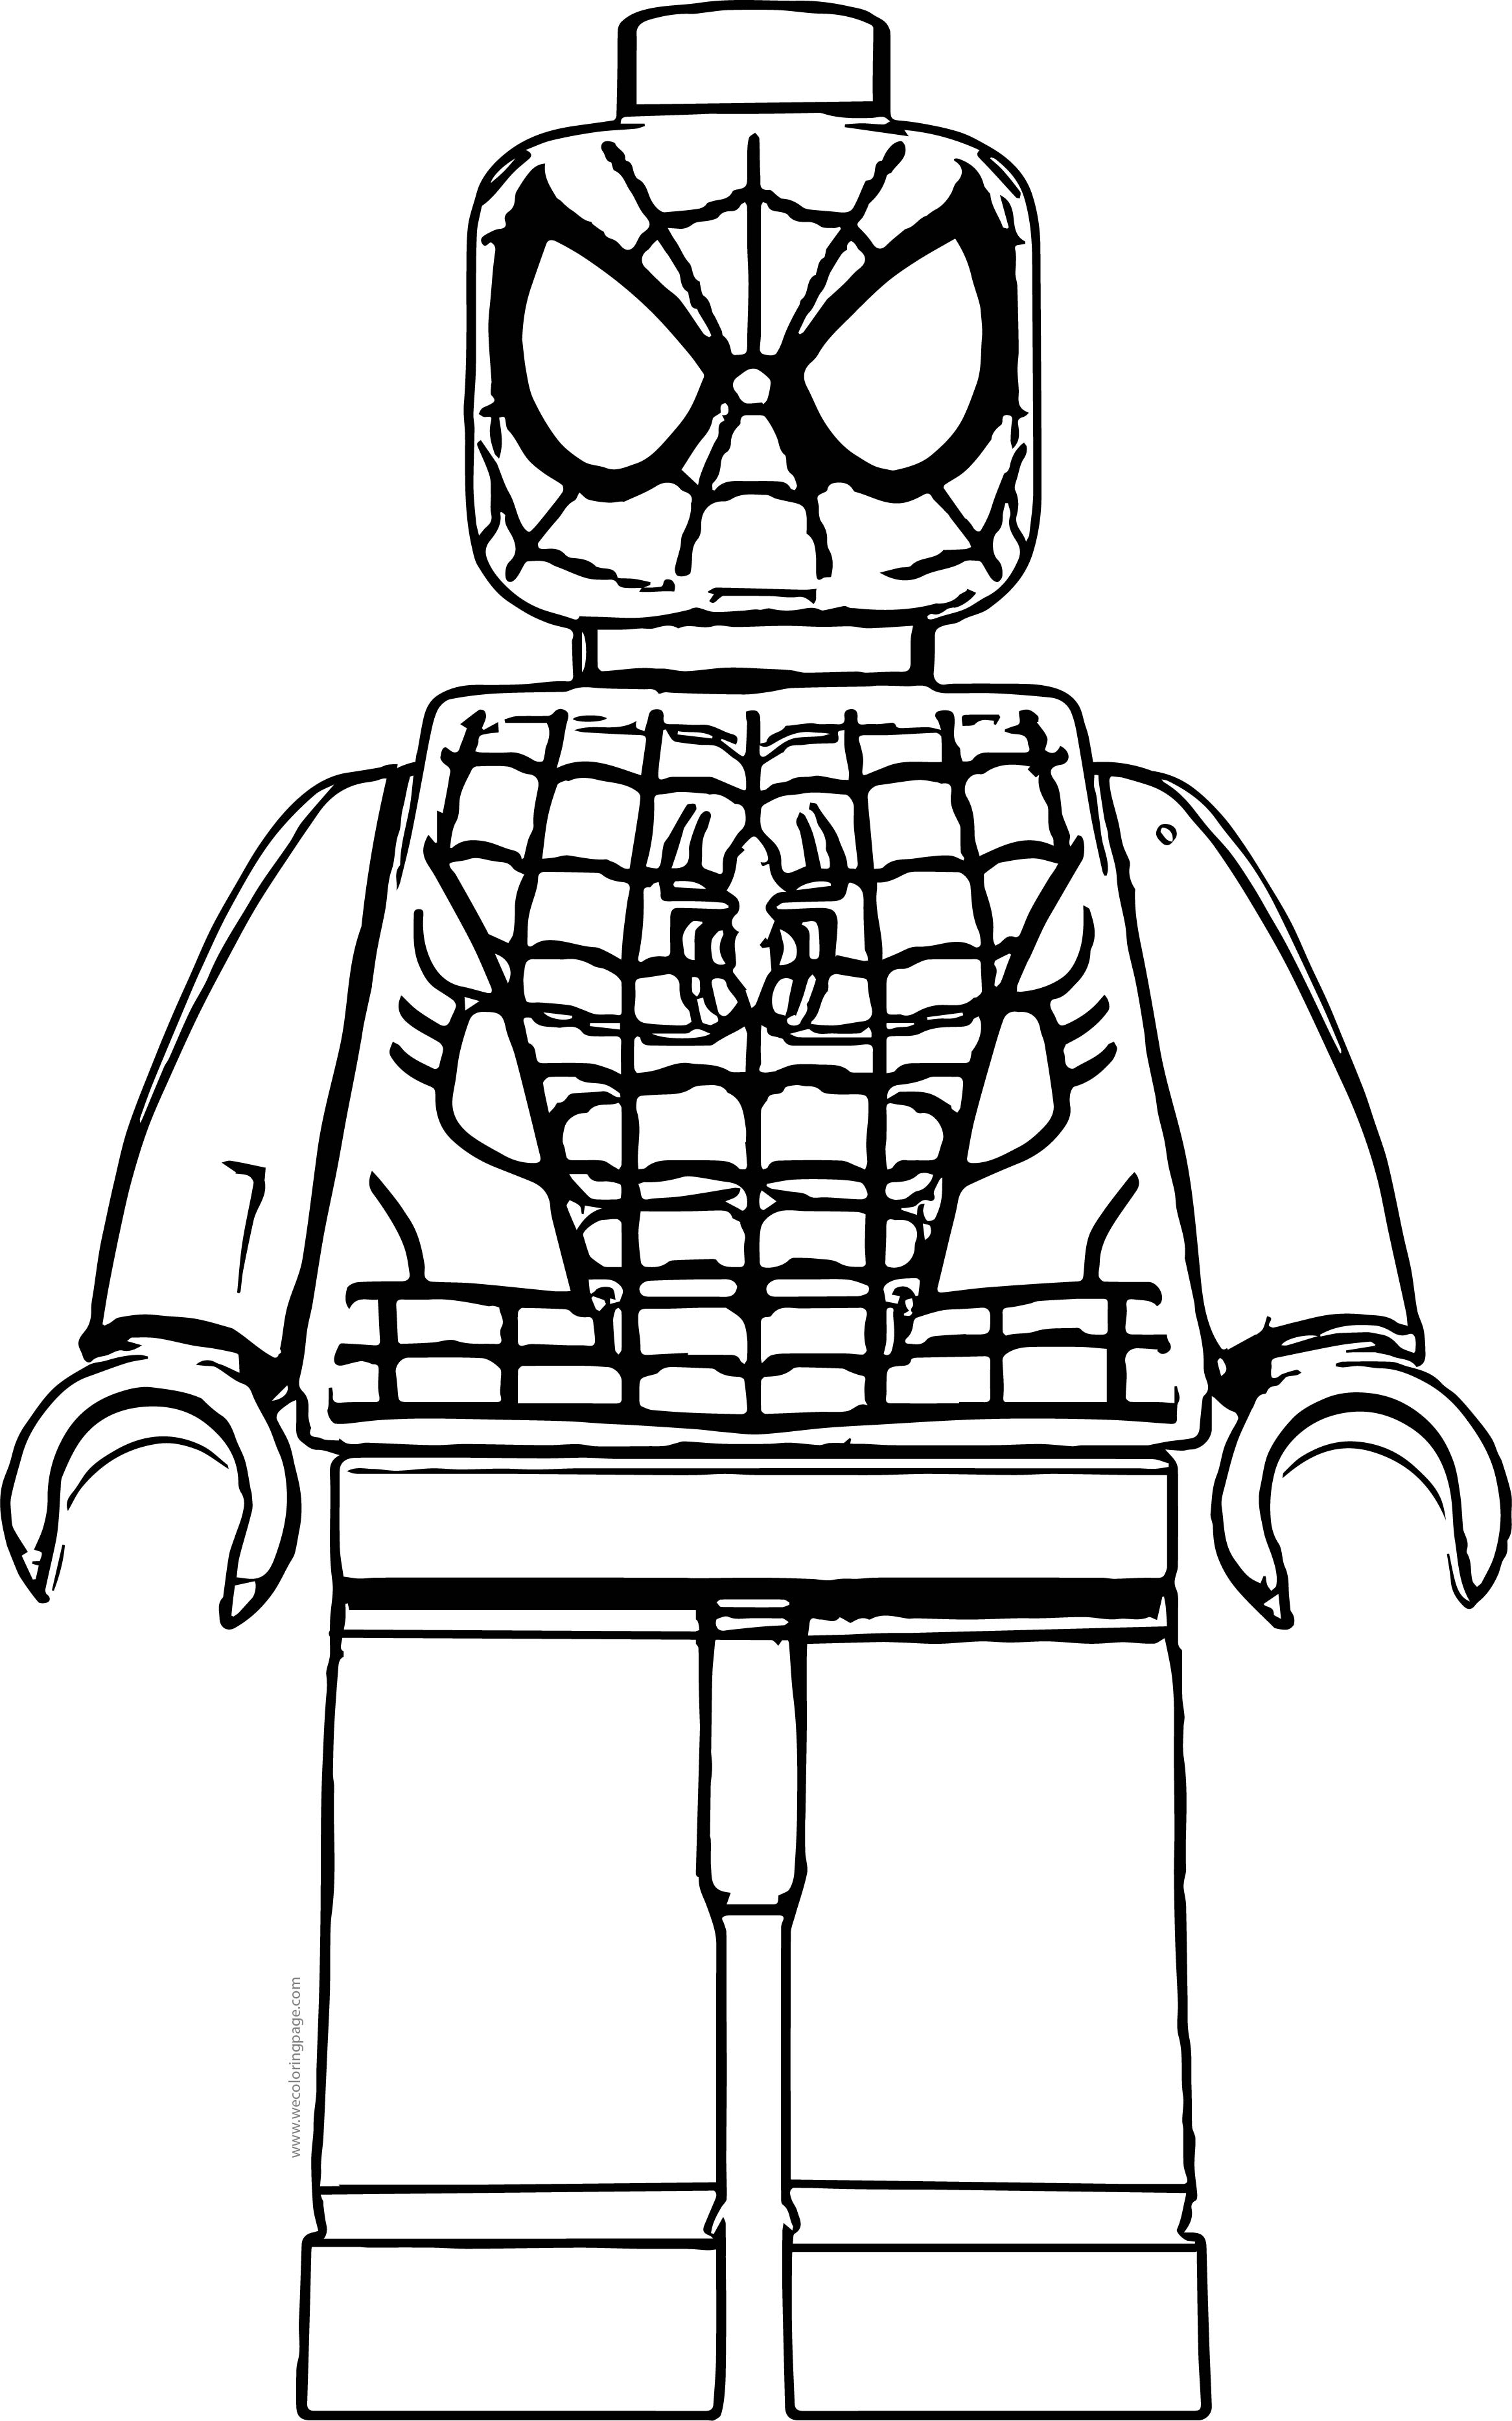 Spider man lego front view coloring page for Lego guy coloring page